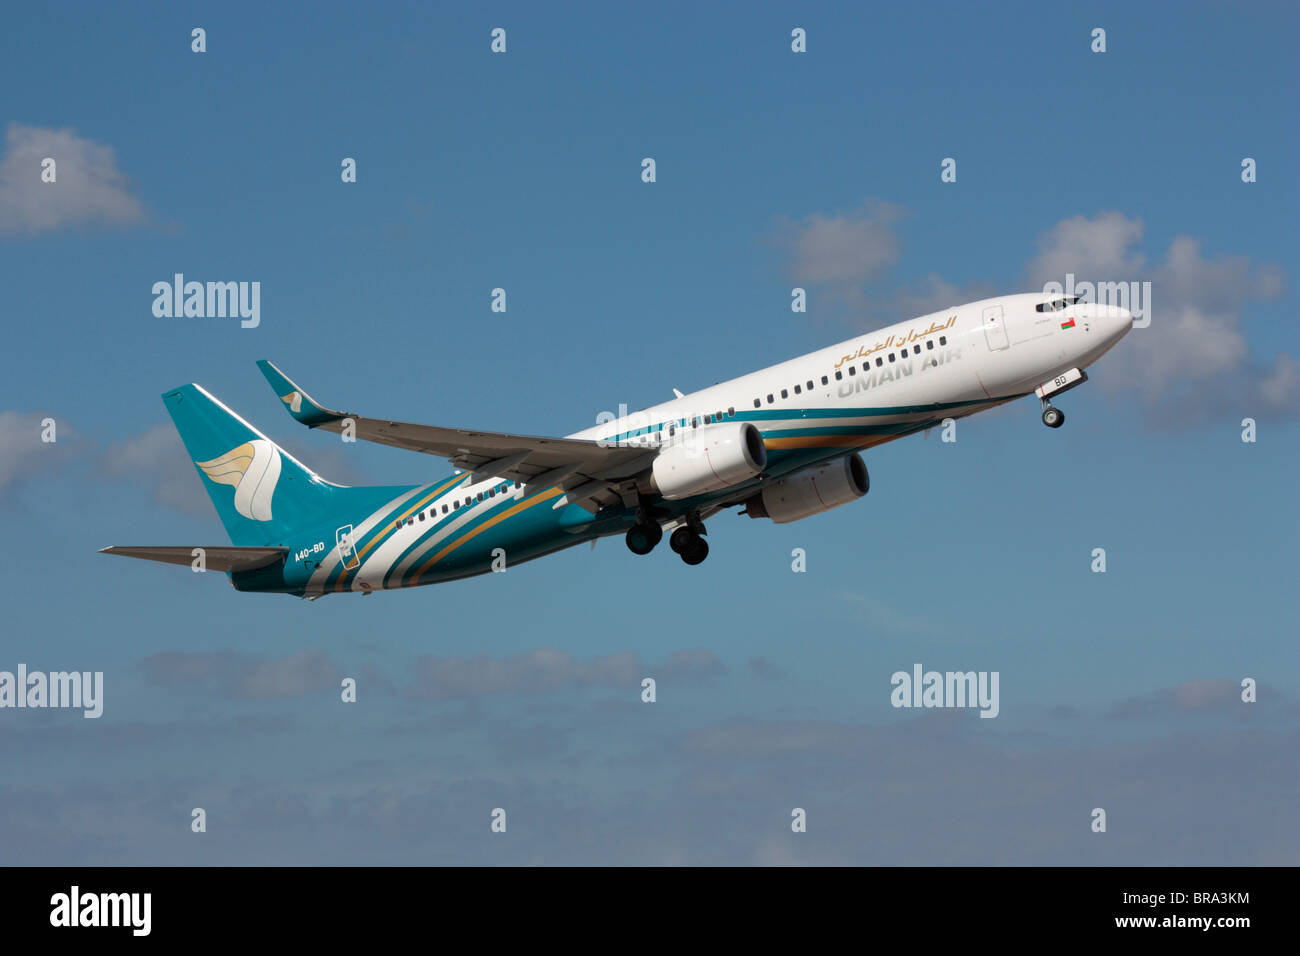 Oman Air Boeing 737-800 commercial jet airplane on takeoff - Stock Image